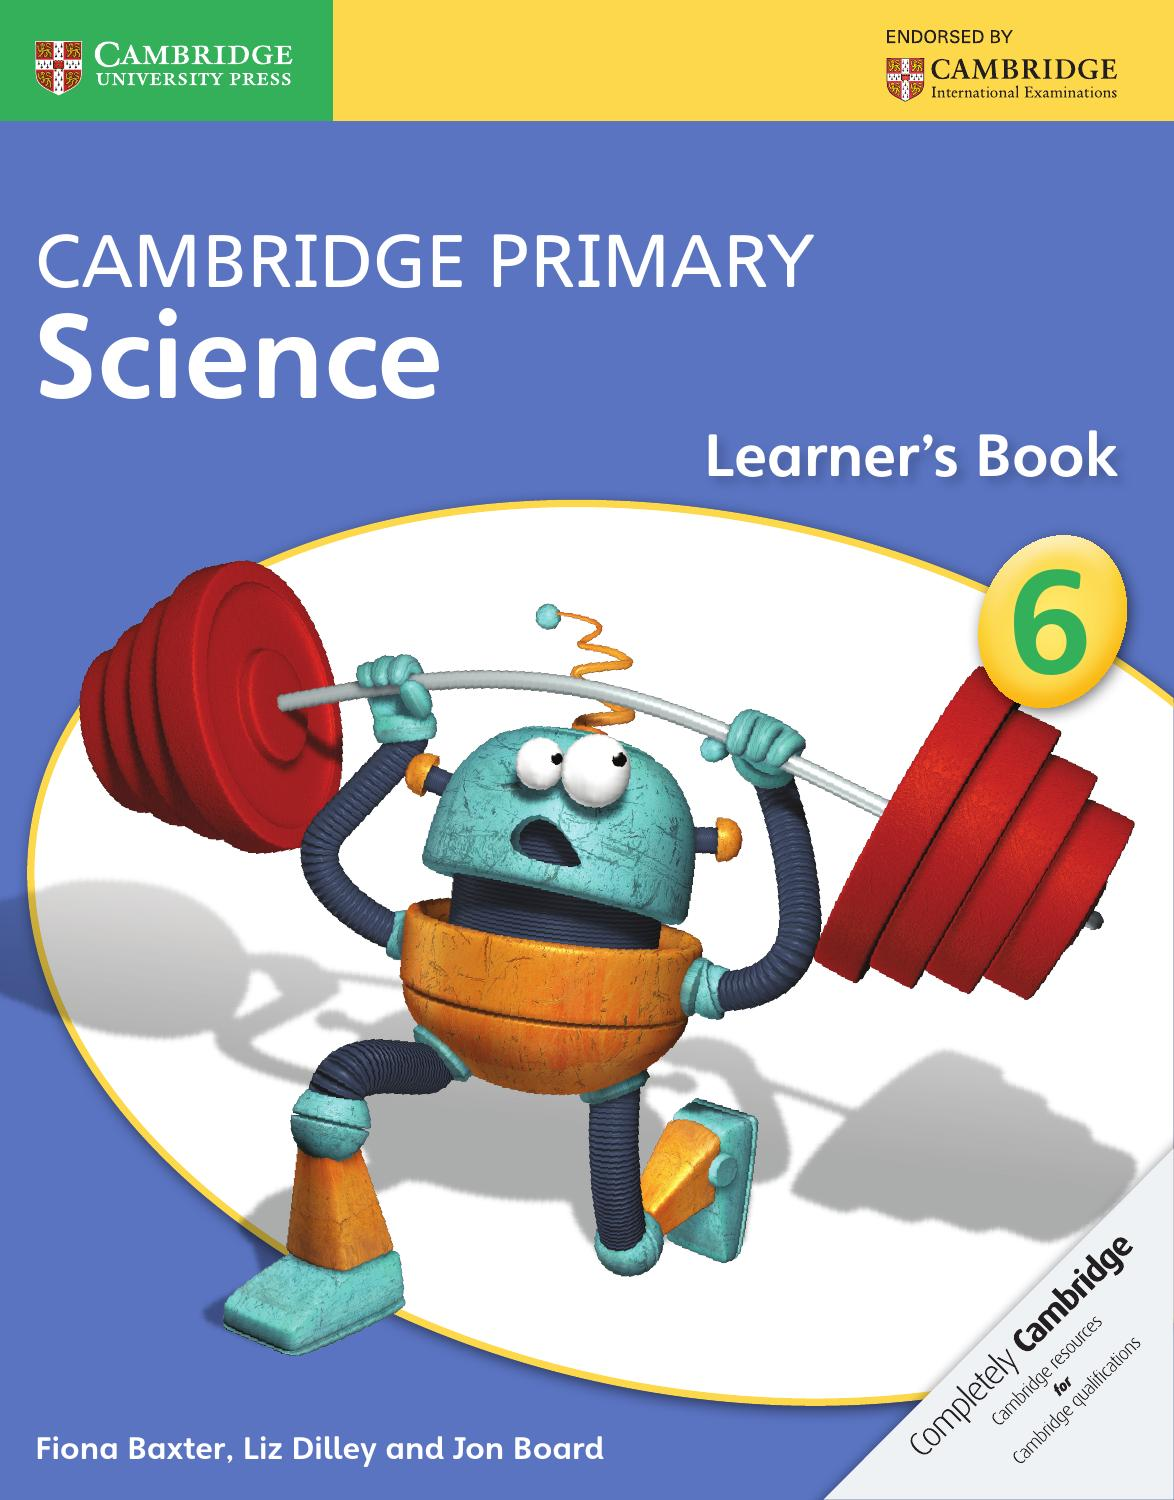 cambridge science primary stage learners learner international textbook books education baxter fiona amazon collins english booklist sciences skills cie flip